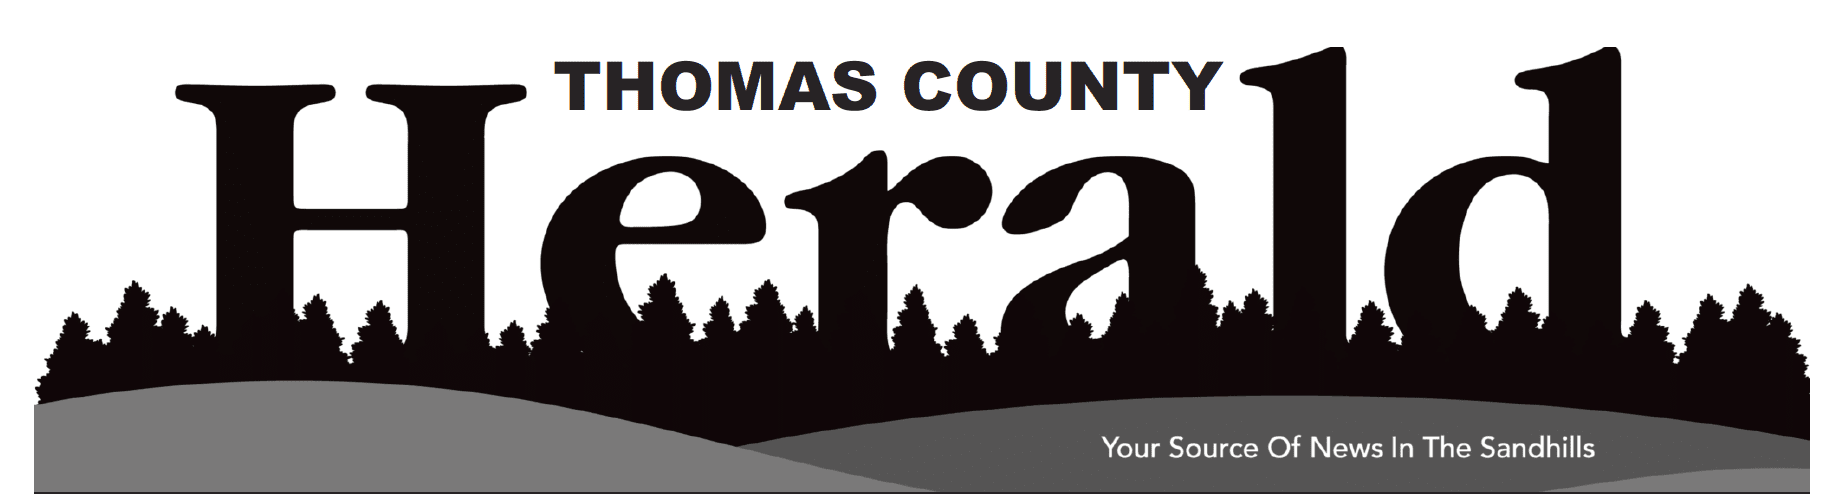 Thomascounty Masthead